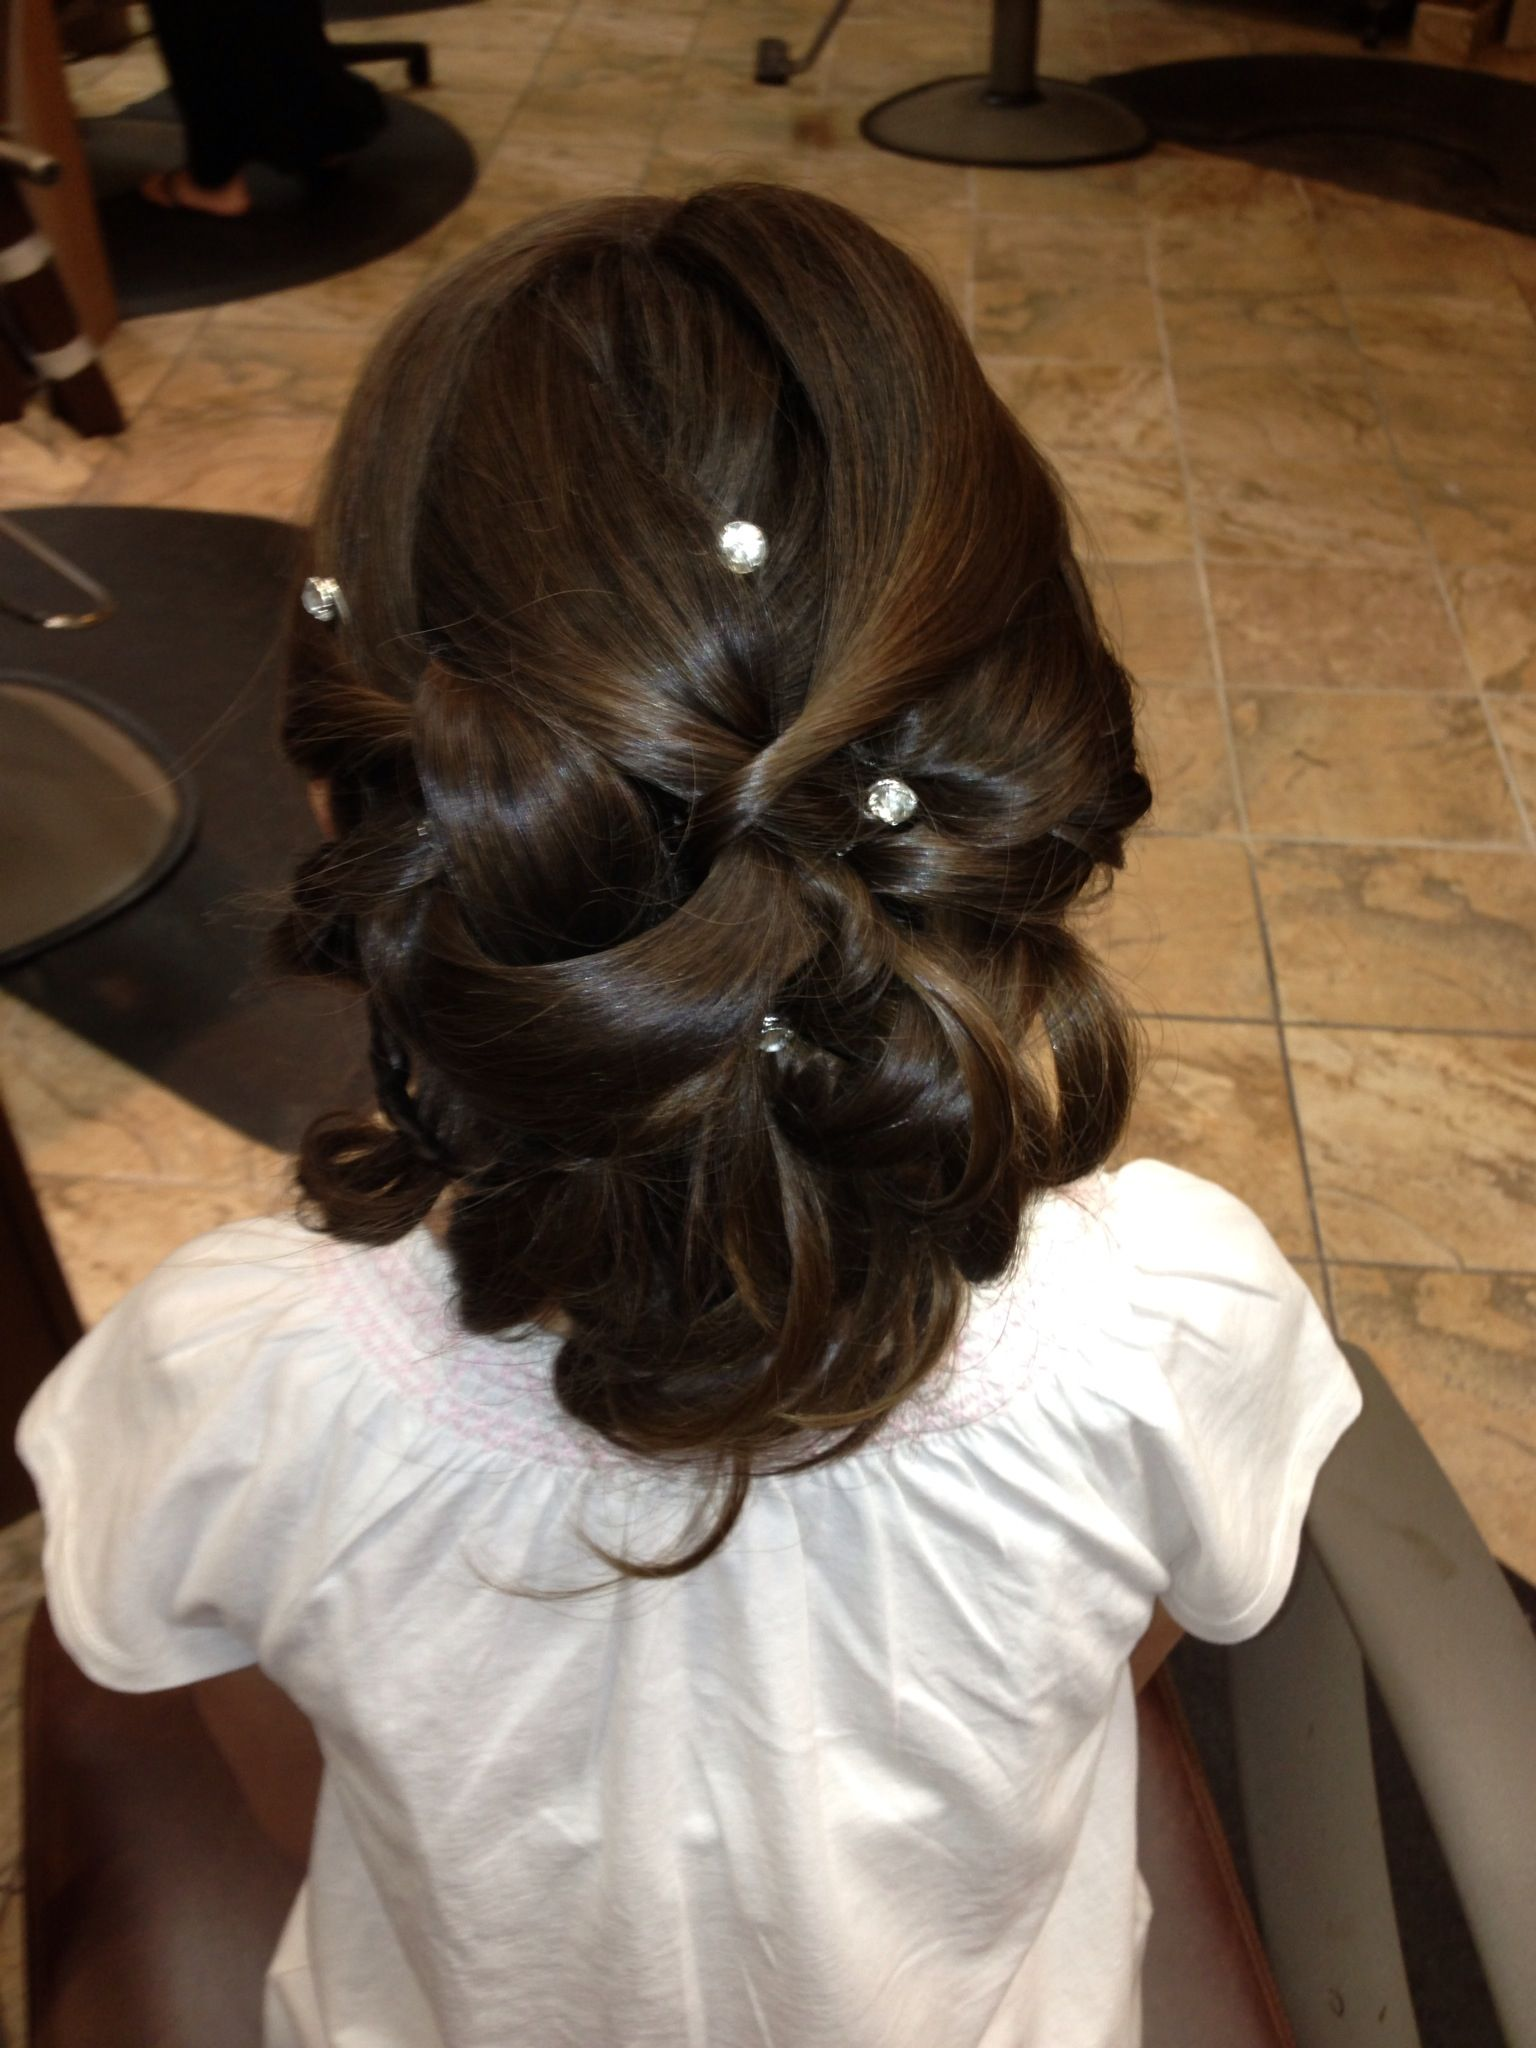 hairstyle for first communion | hair | pinterest | communion and